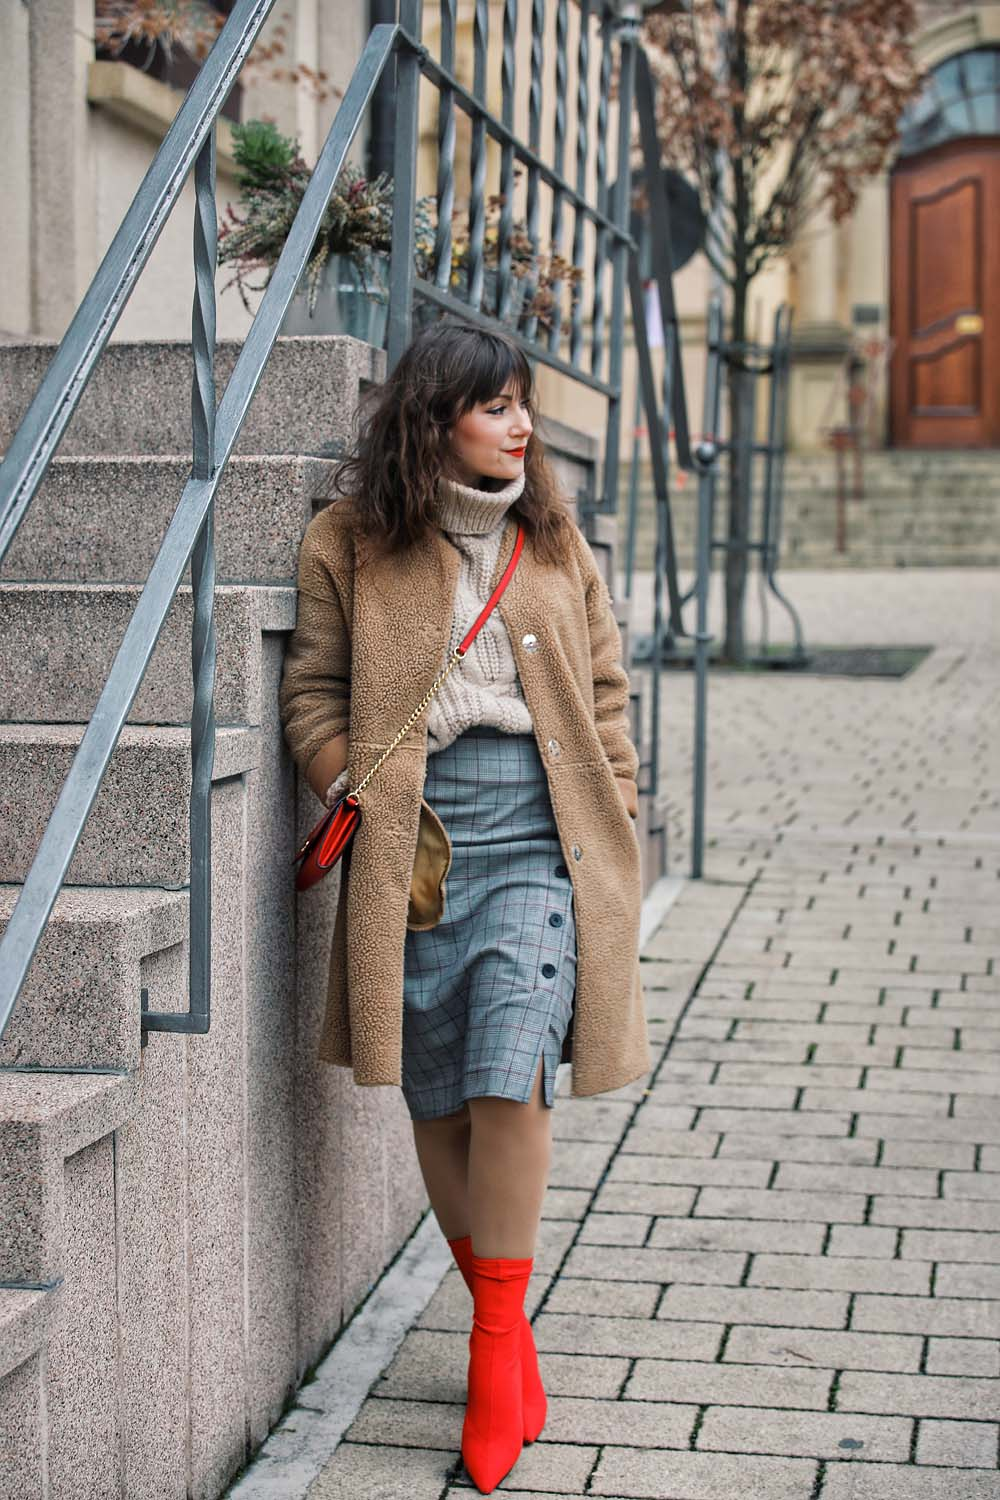 Winter Büro/Office Outfit